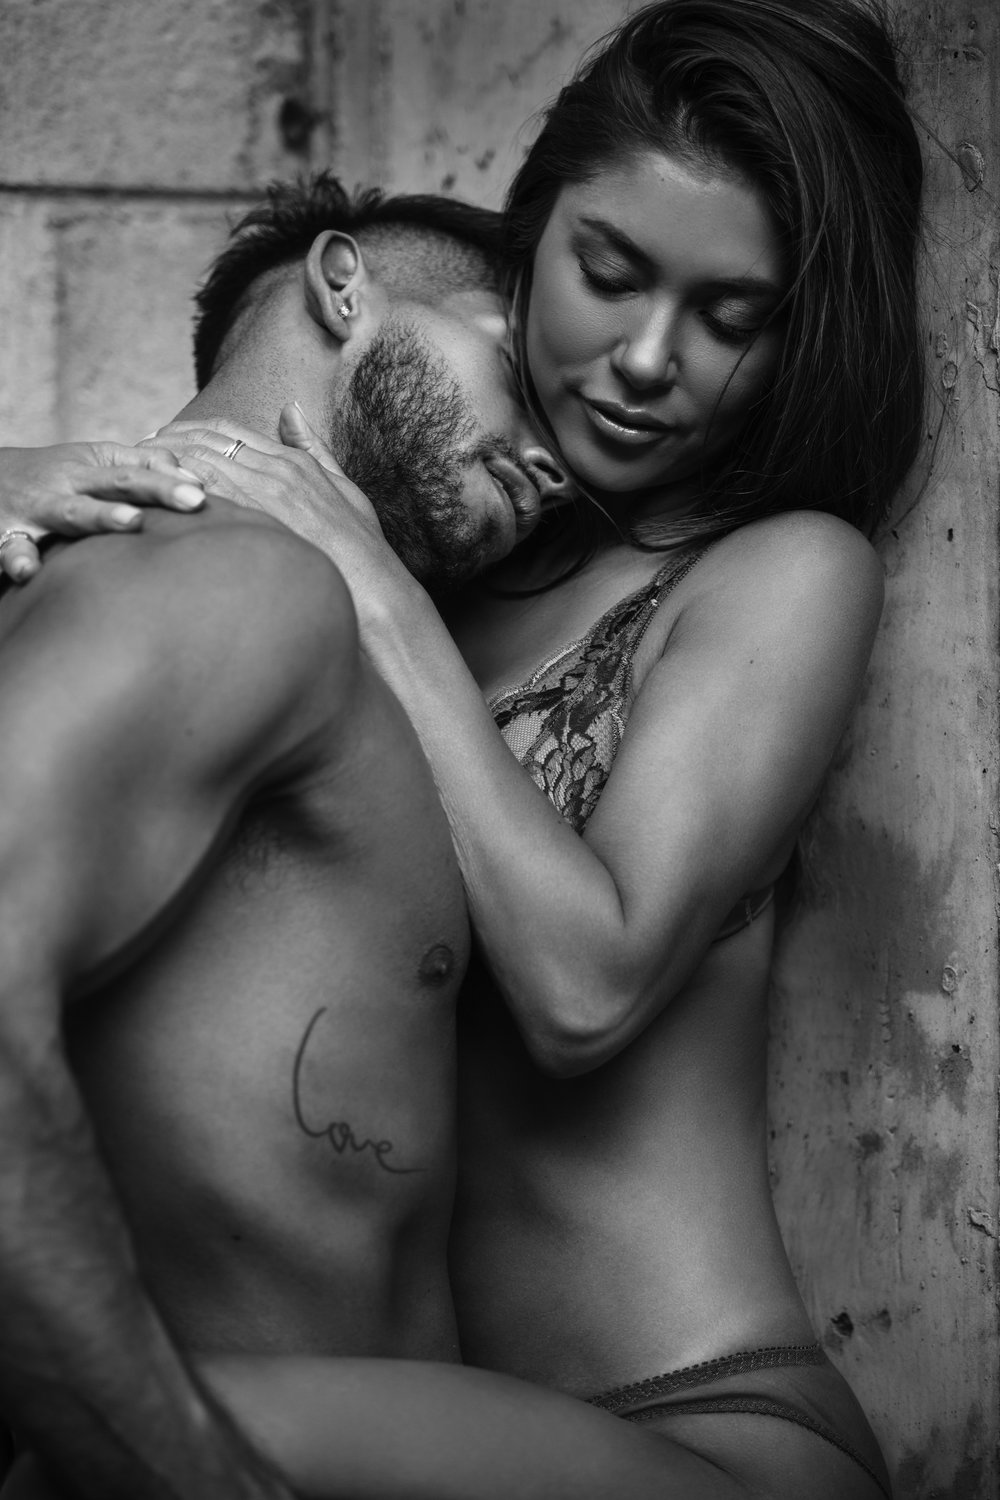 Male and female model posing intimately together. Black and white editorial photography.